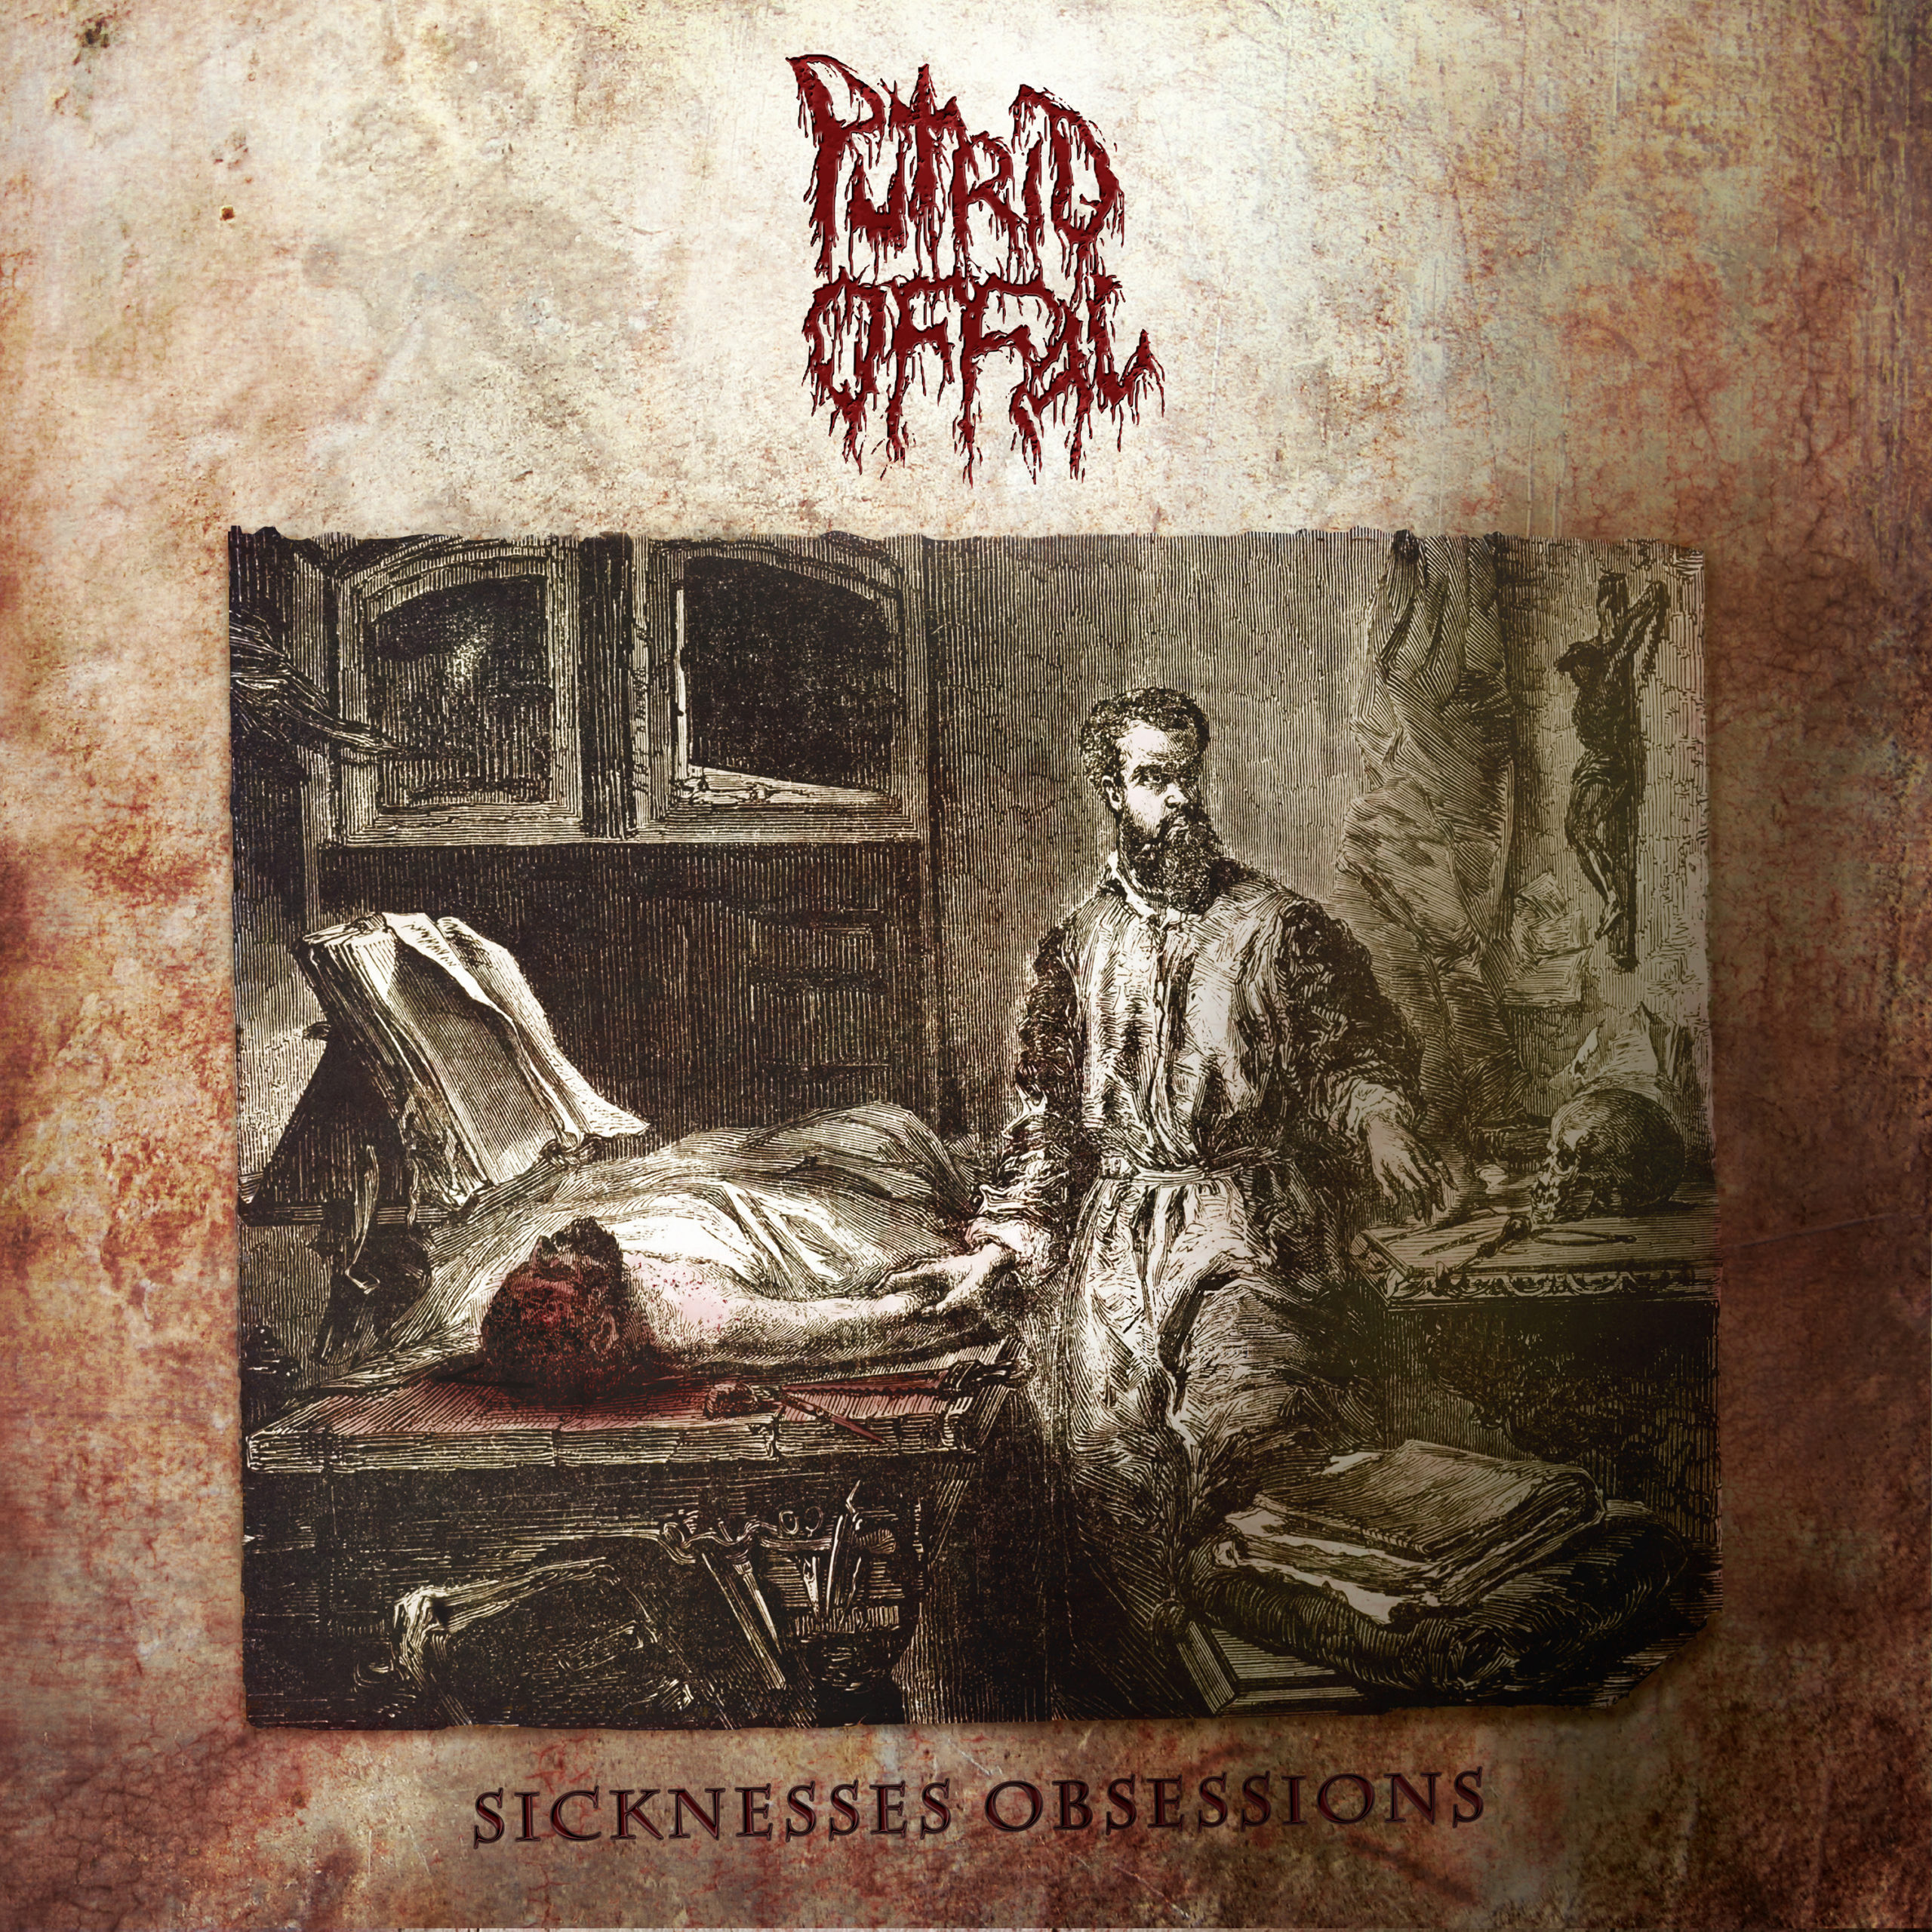 putrid offal Sicknesses Obsessions